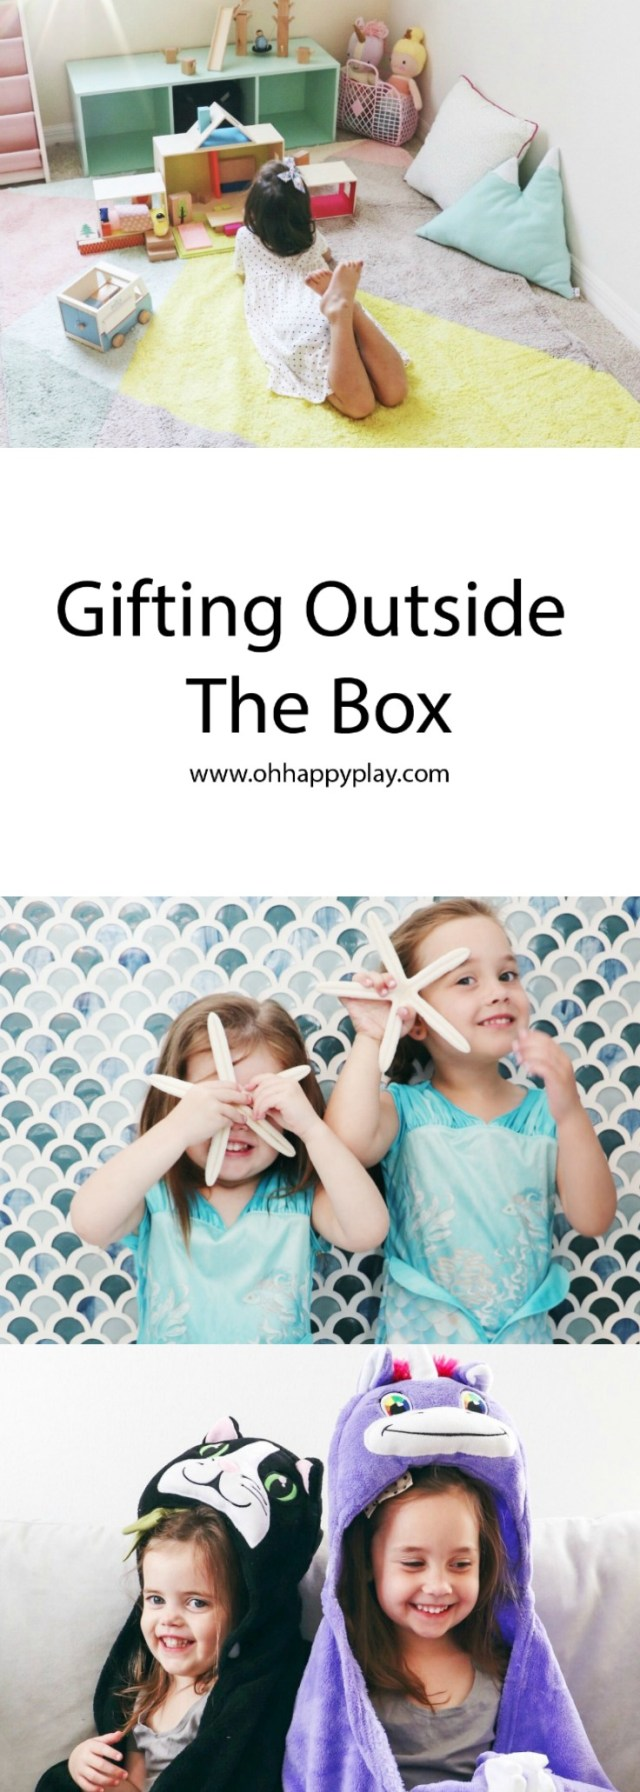 "Do you want to be the unique and ""outside the box."" gift giver? Check out how to gifting outside the box works with Oh Happy Play!"